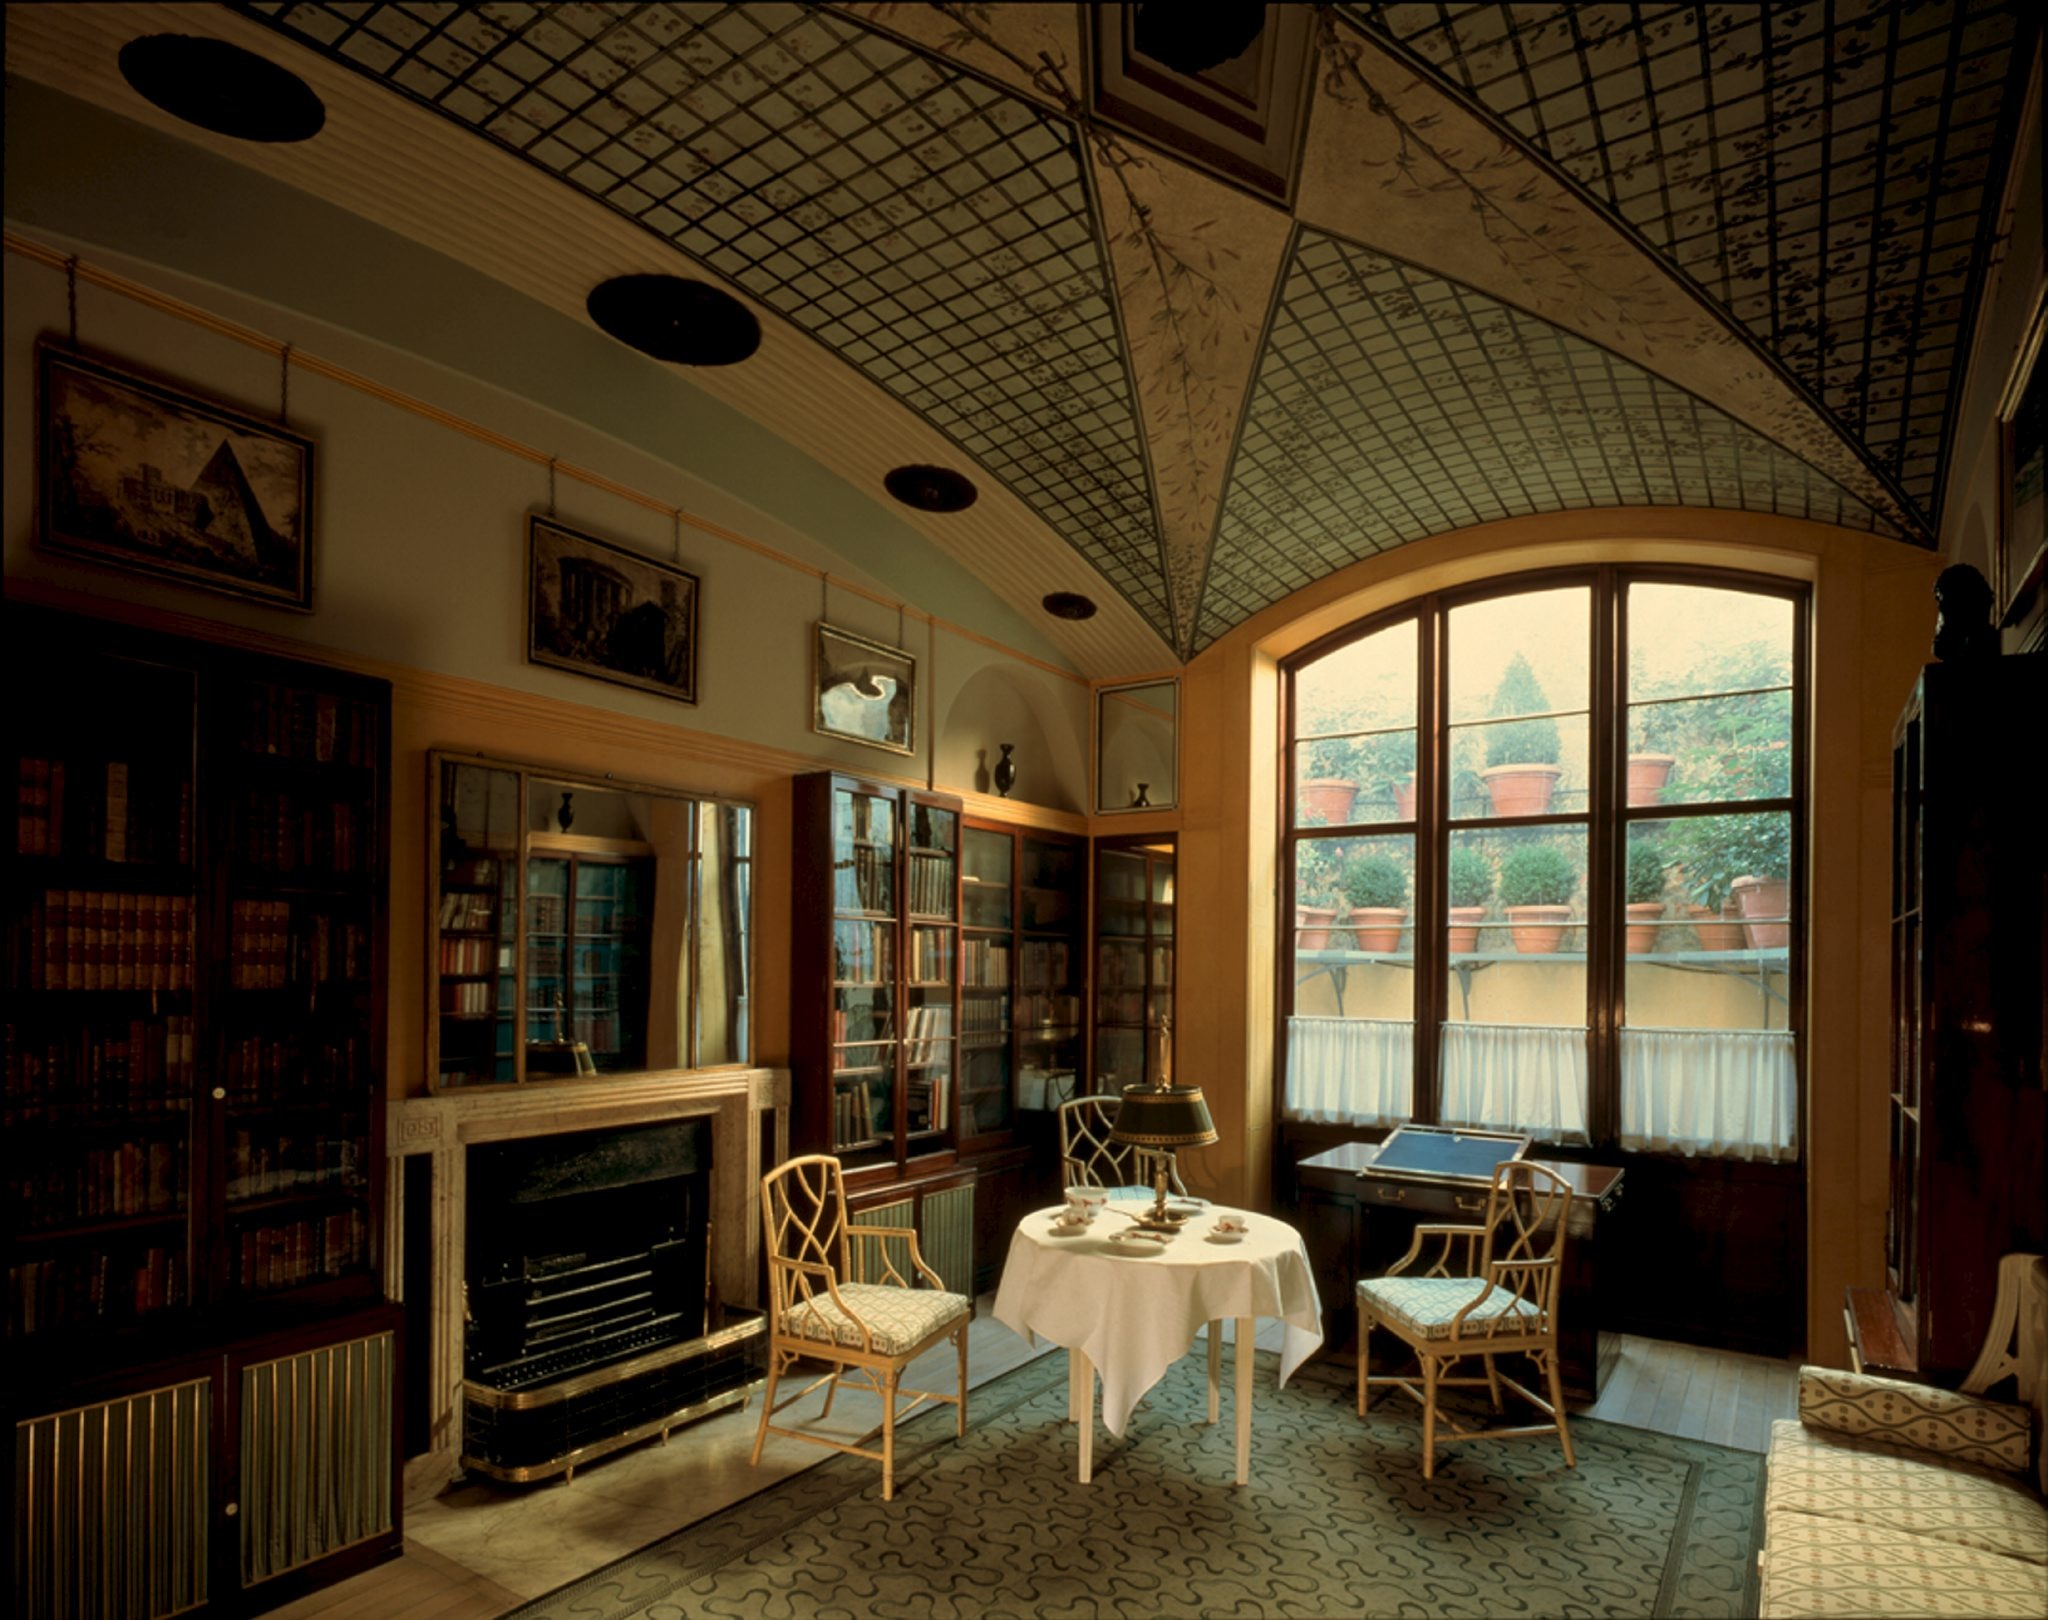 Sir John Soane's Museum,The No. 12 Breakfast Parlour, Soane Museum